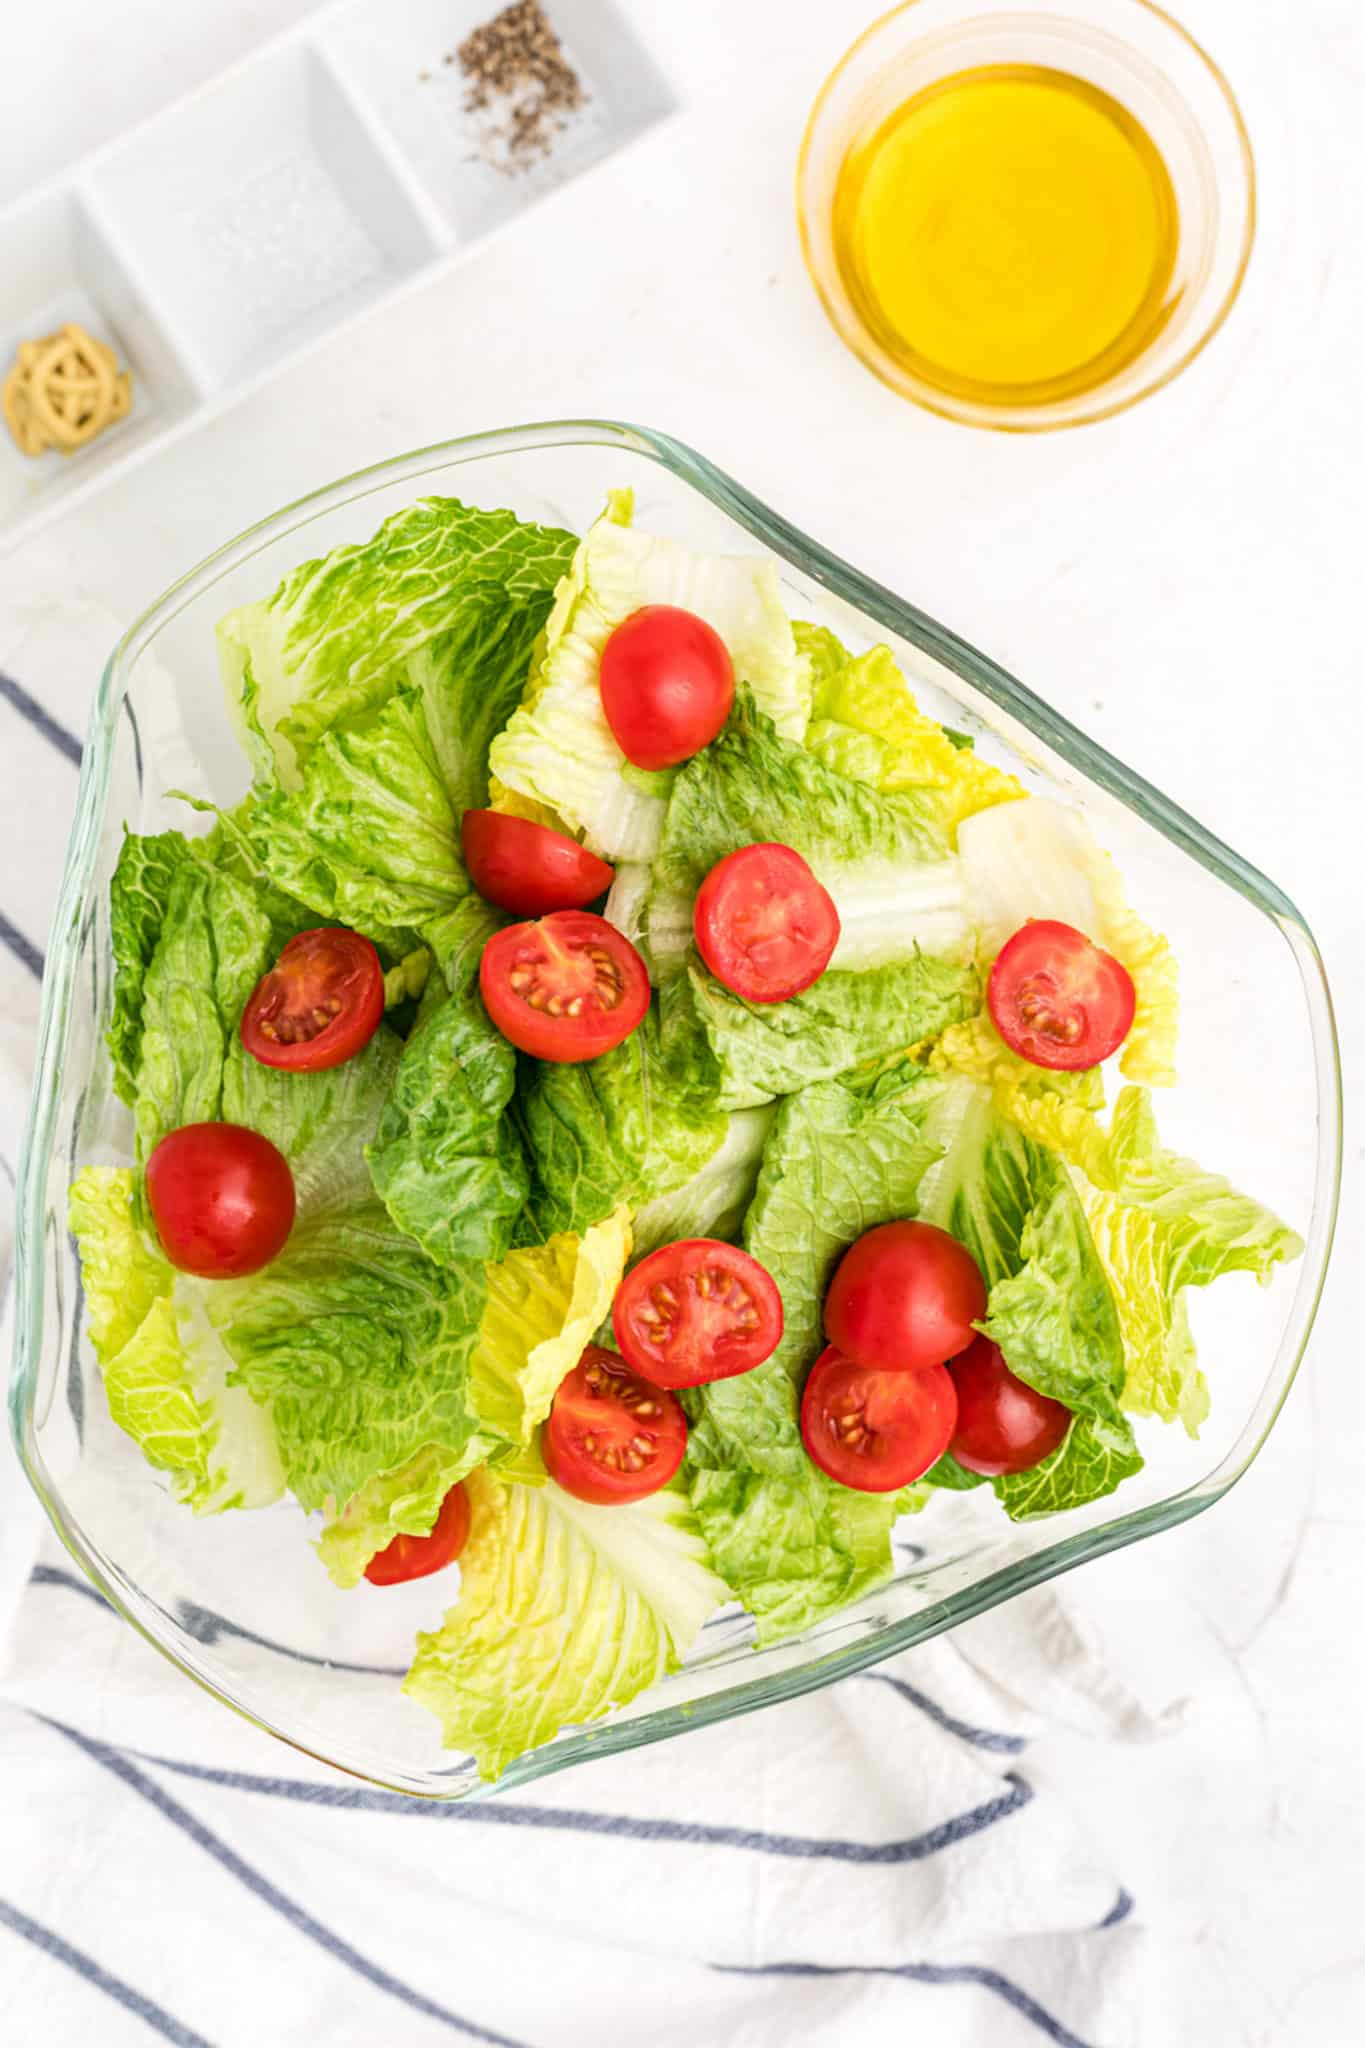 Romaine salad with a vinaigrette and tomatoes